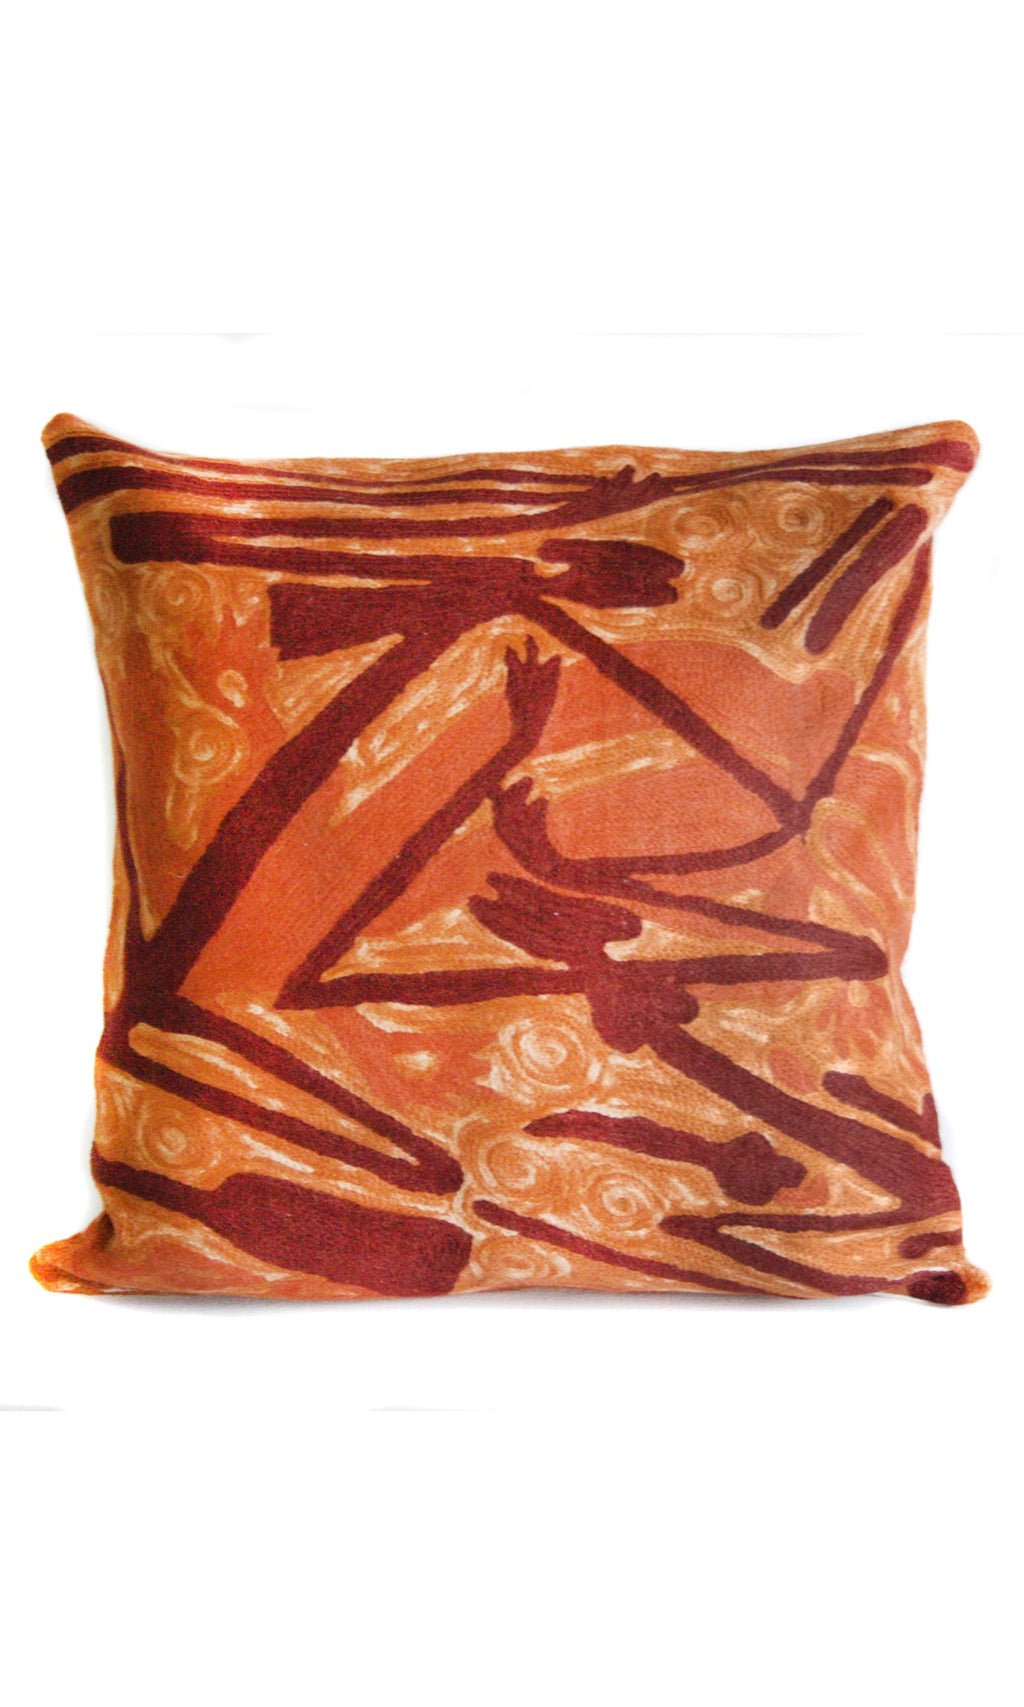 Aboriginal Art Cushion Cover by Gabriel Maralngurra